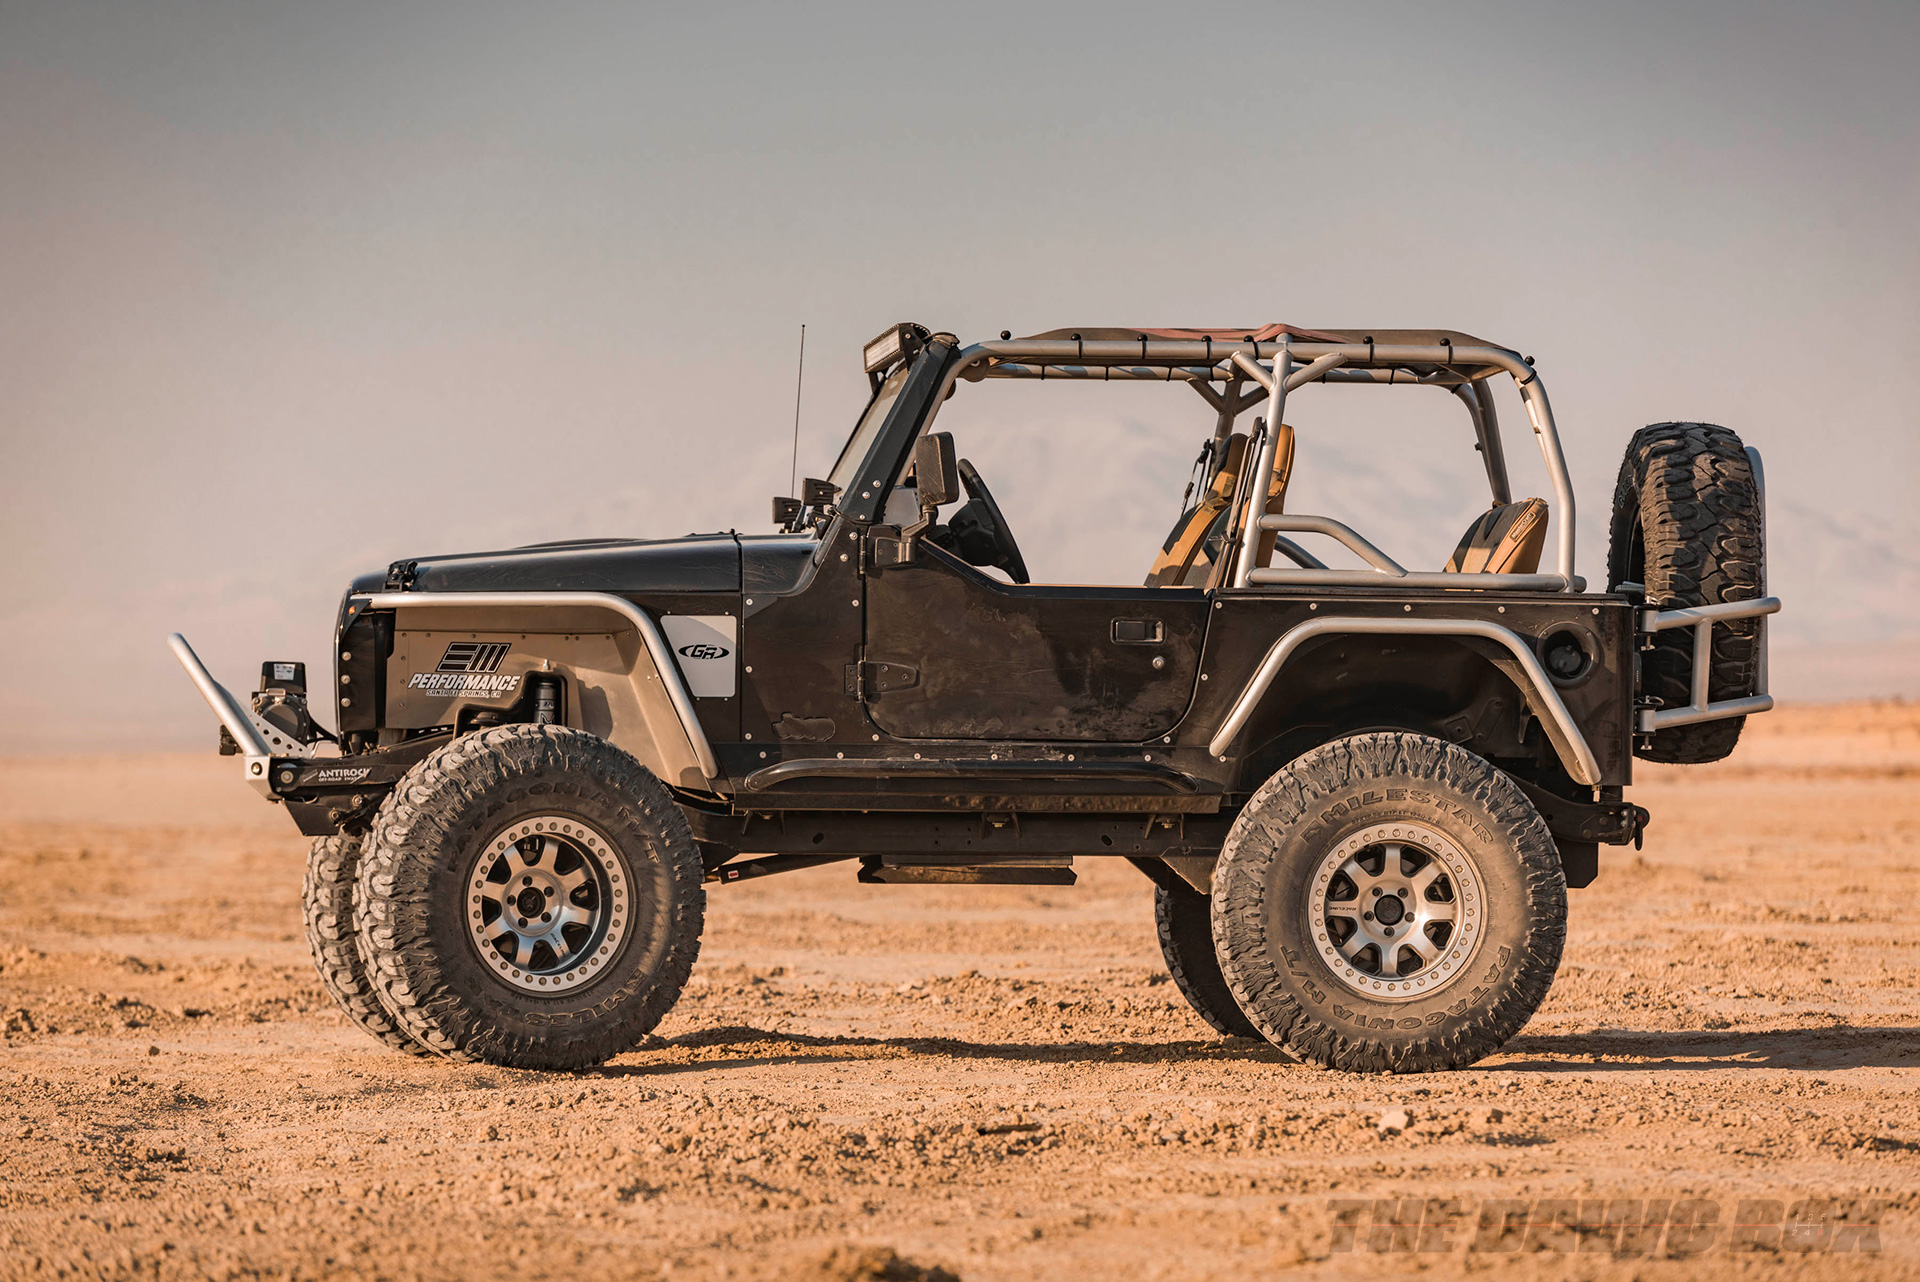 Jeep Wrangler TJ with 37 inch Patagonia MT tires